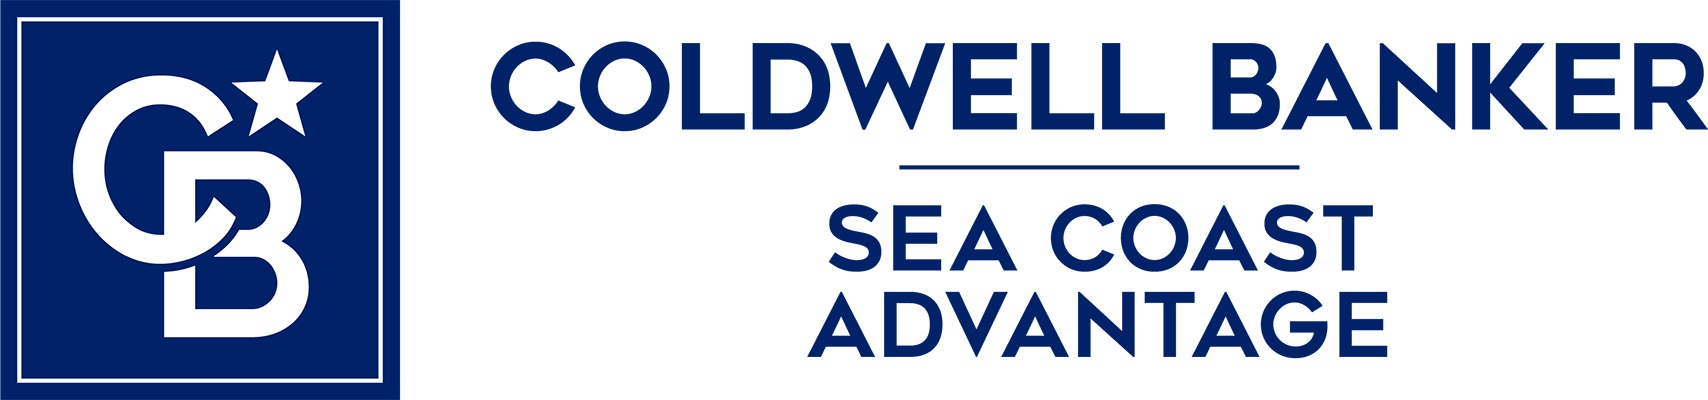 Peter David - Coldwell Banker Sea Coast Advantage Realty